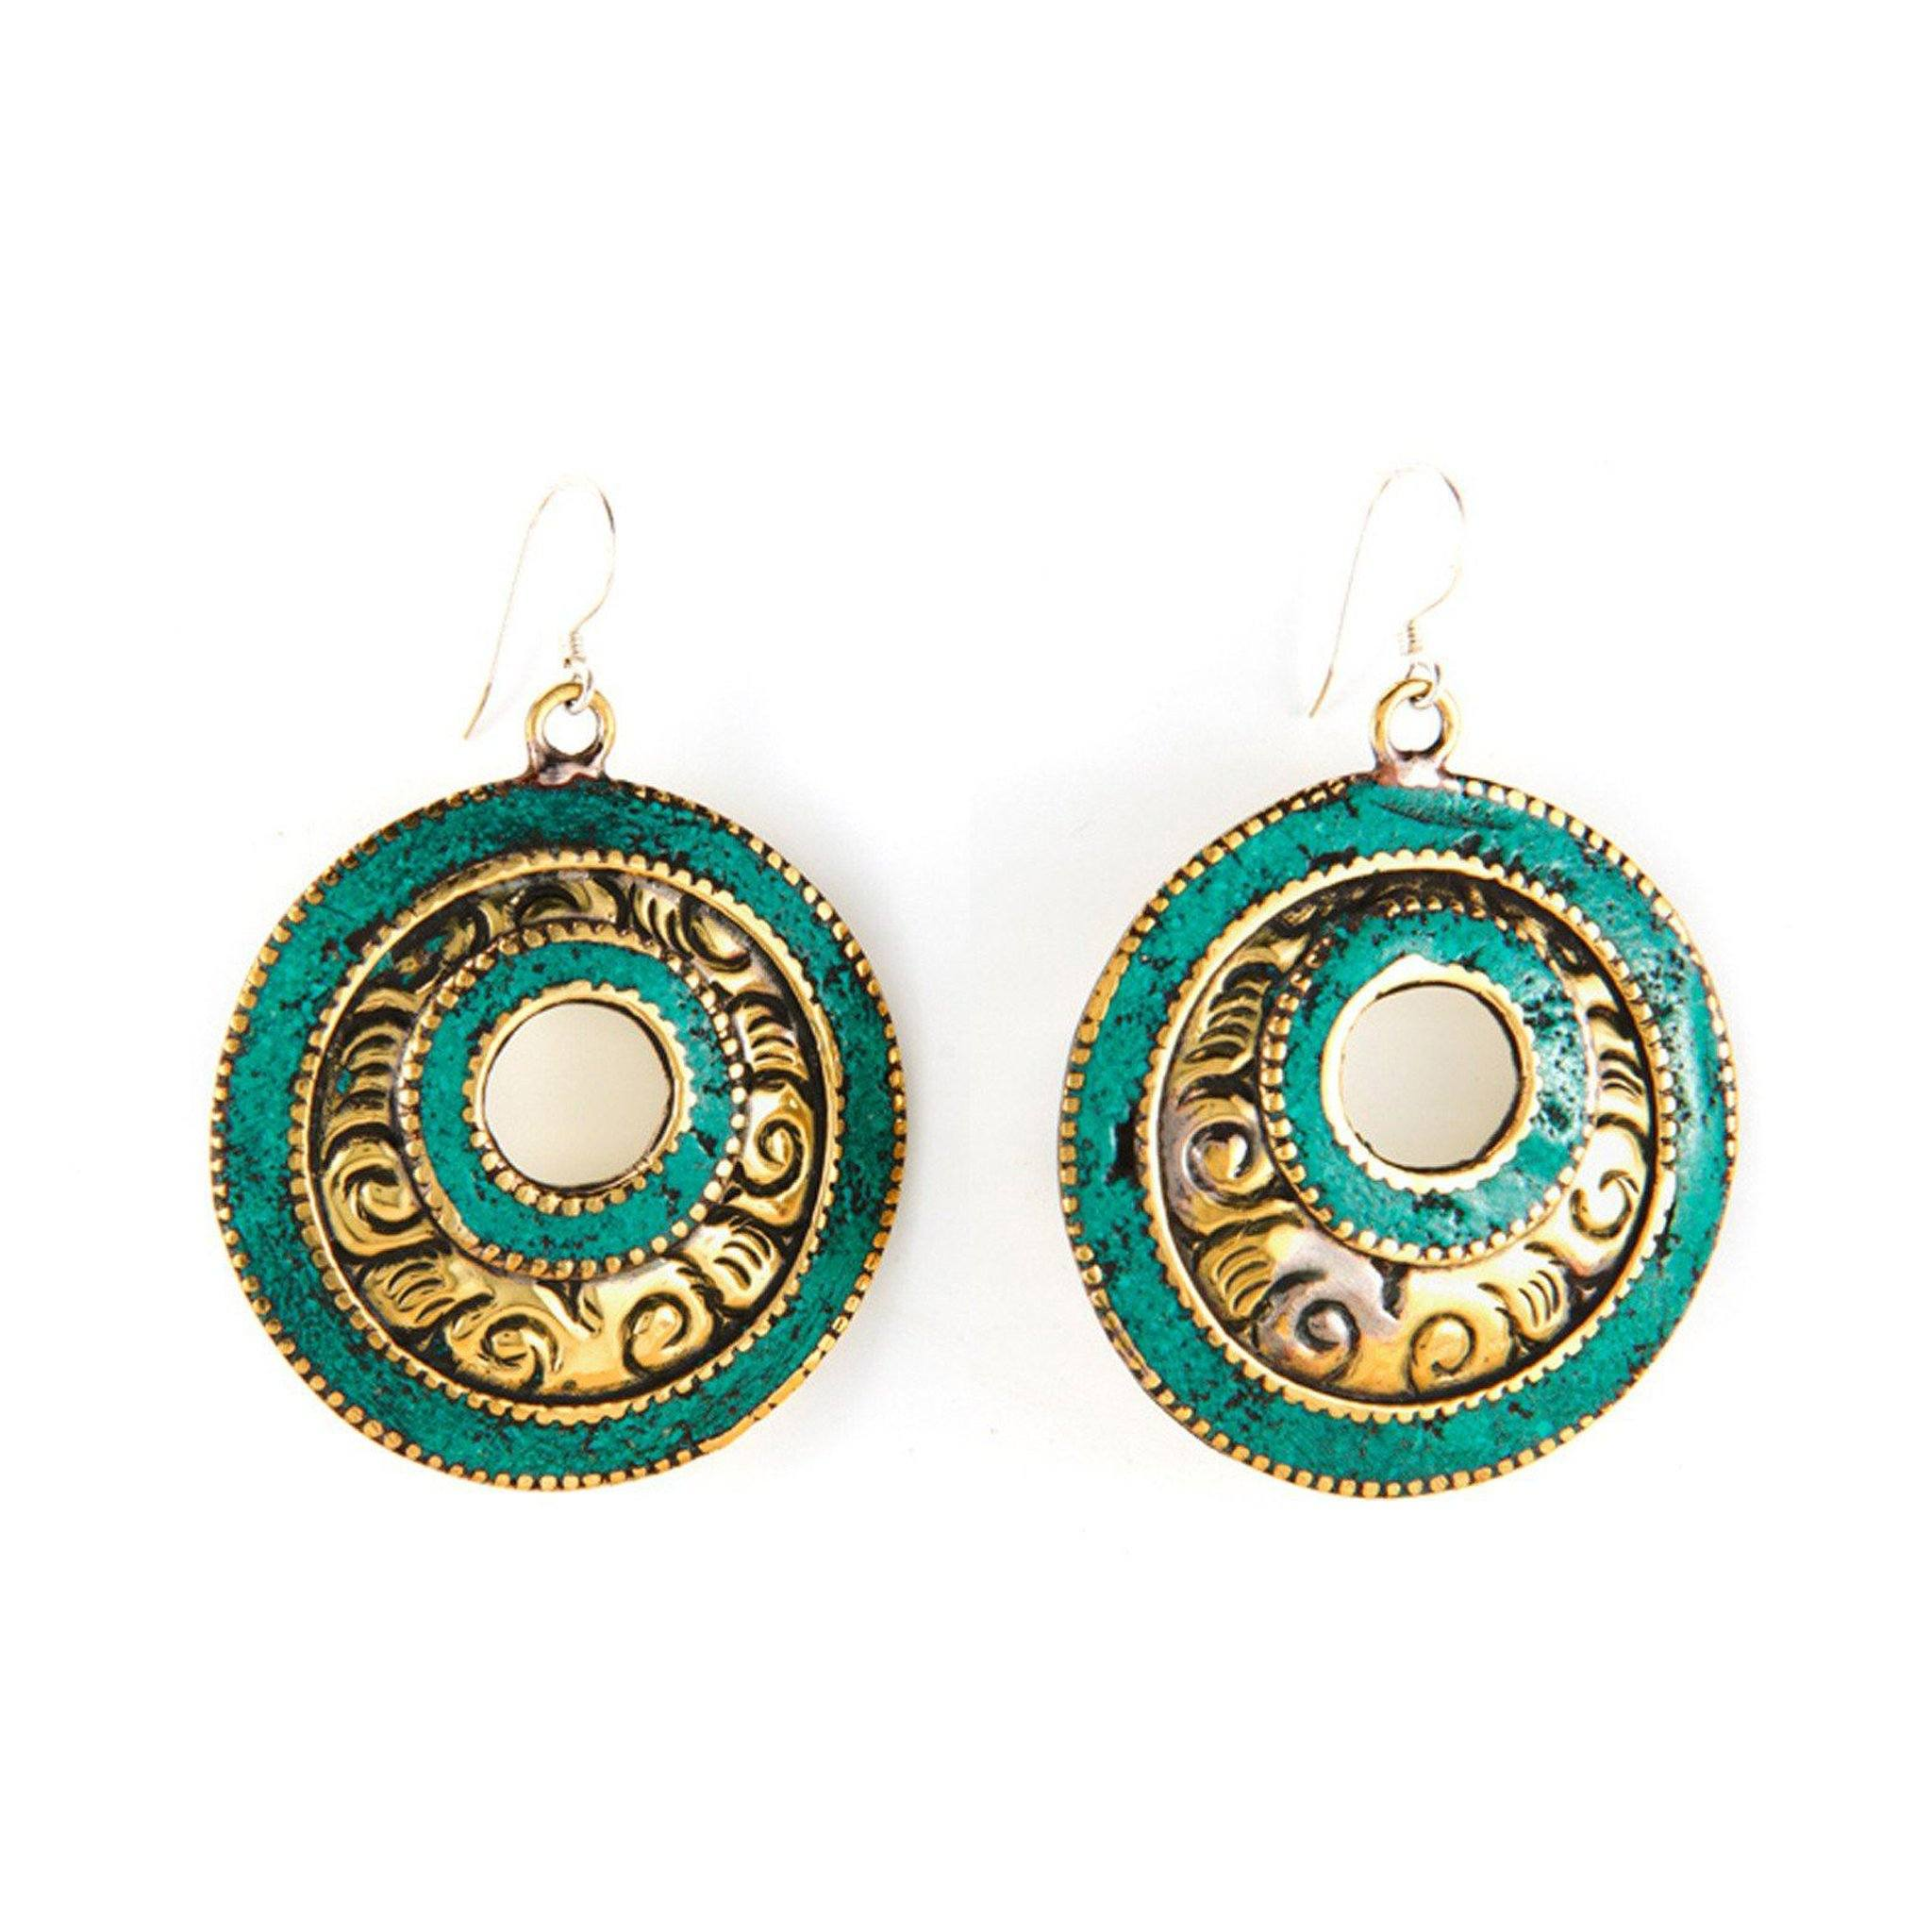 Brass Turquoise Earrings Tibet Craft Corner